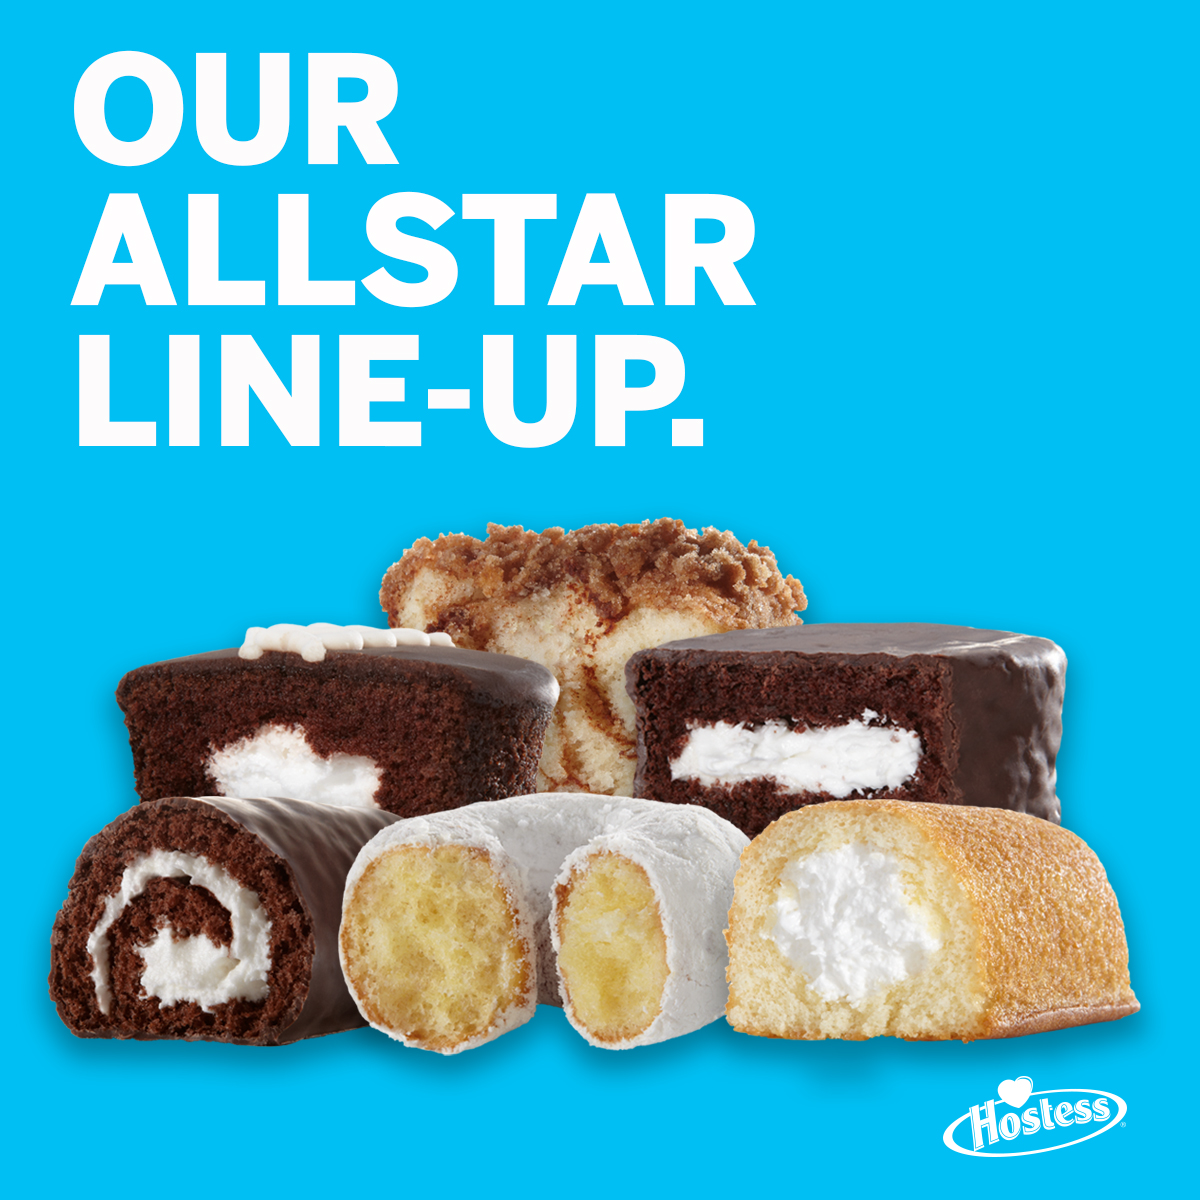 In honor of the 2015 All Star Baseball Game. Our line-up was certainly the most unique. I created the copy and concept for this post.